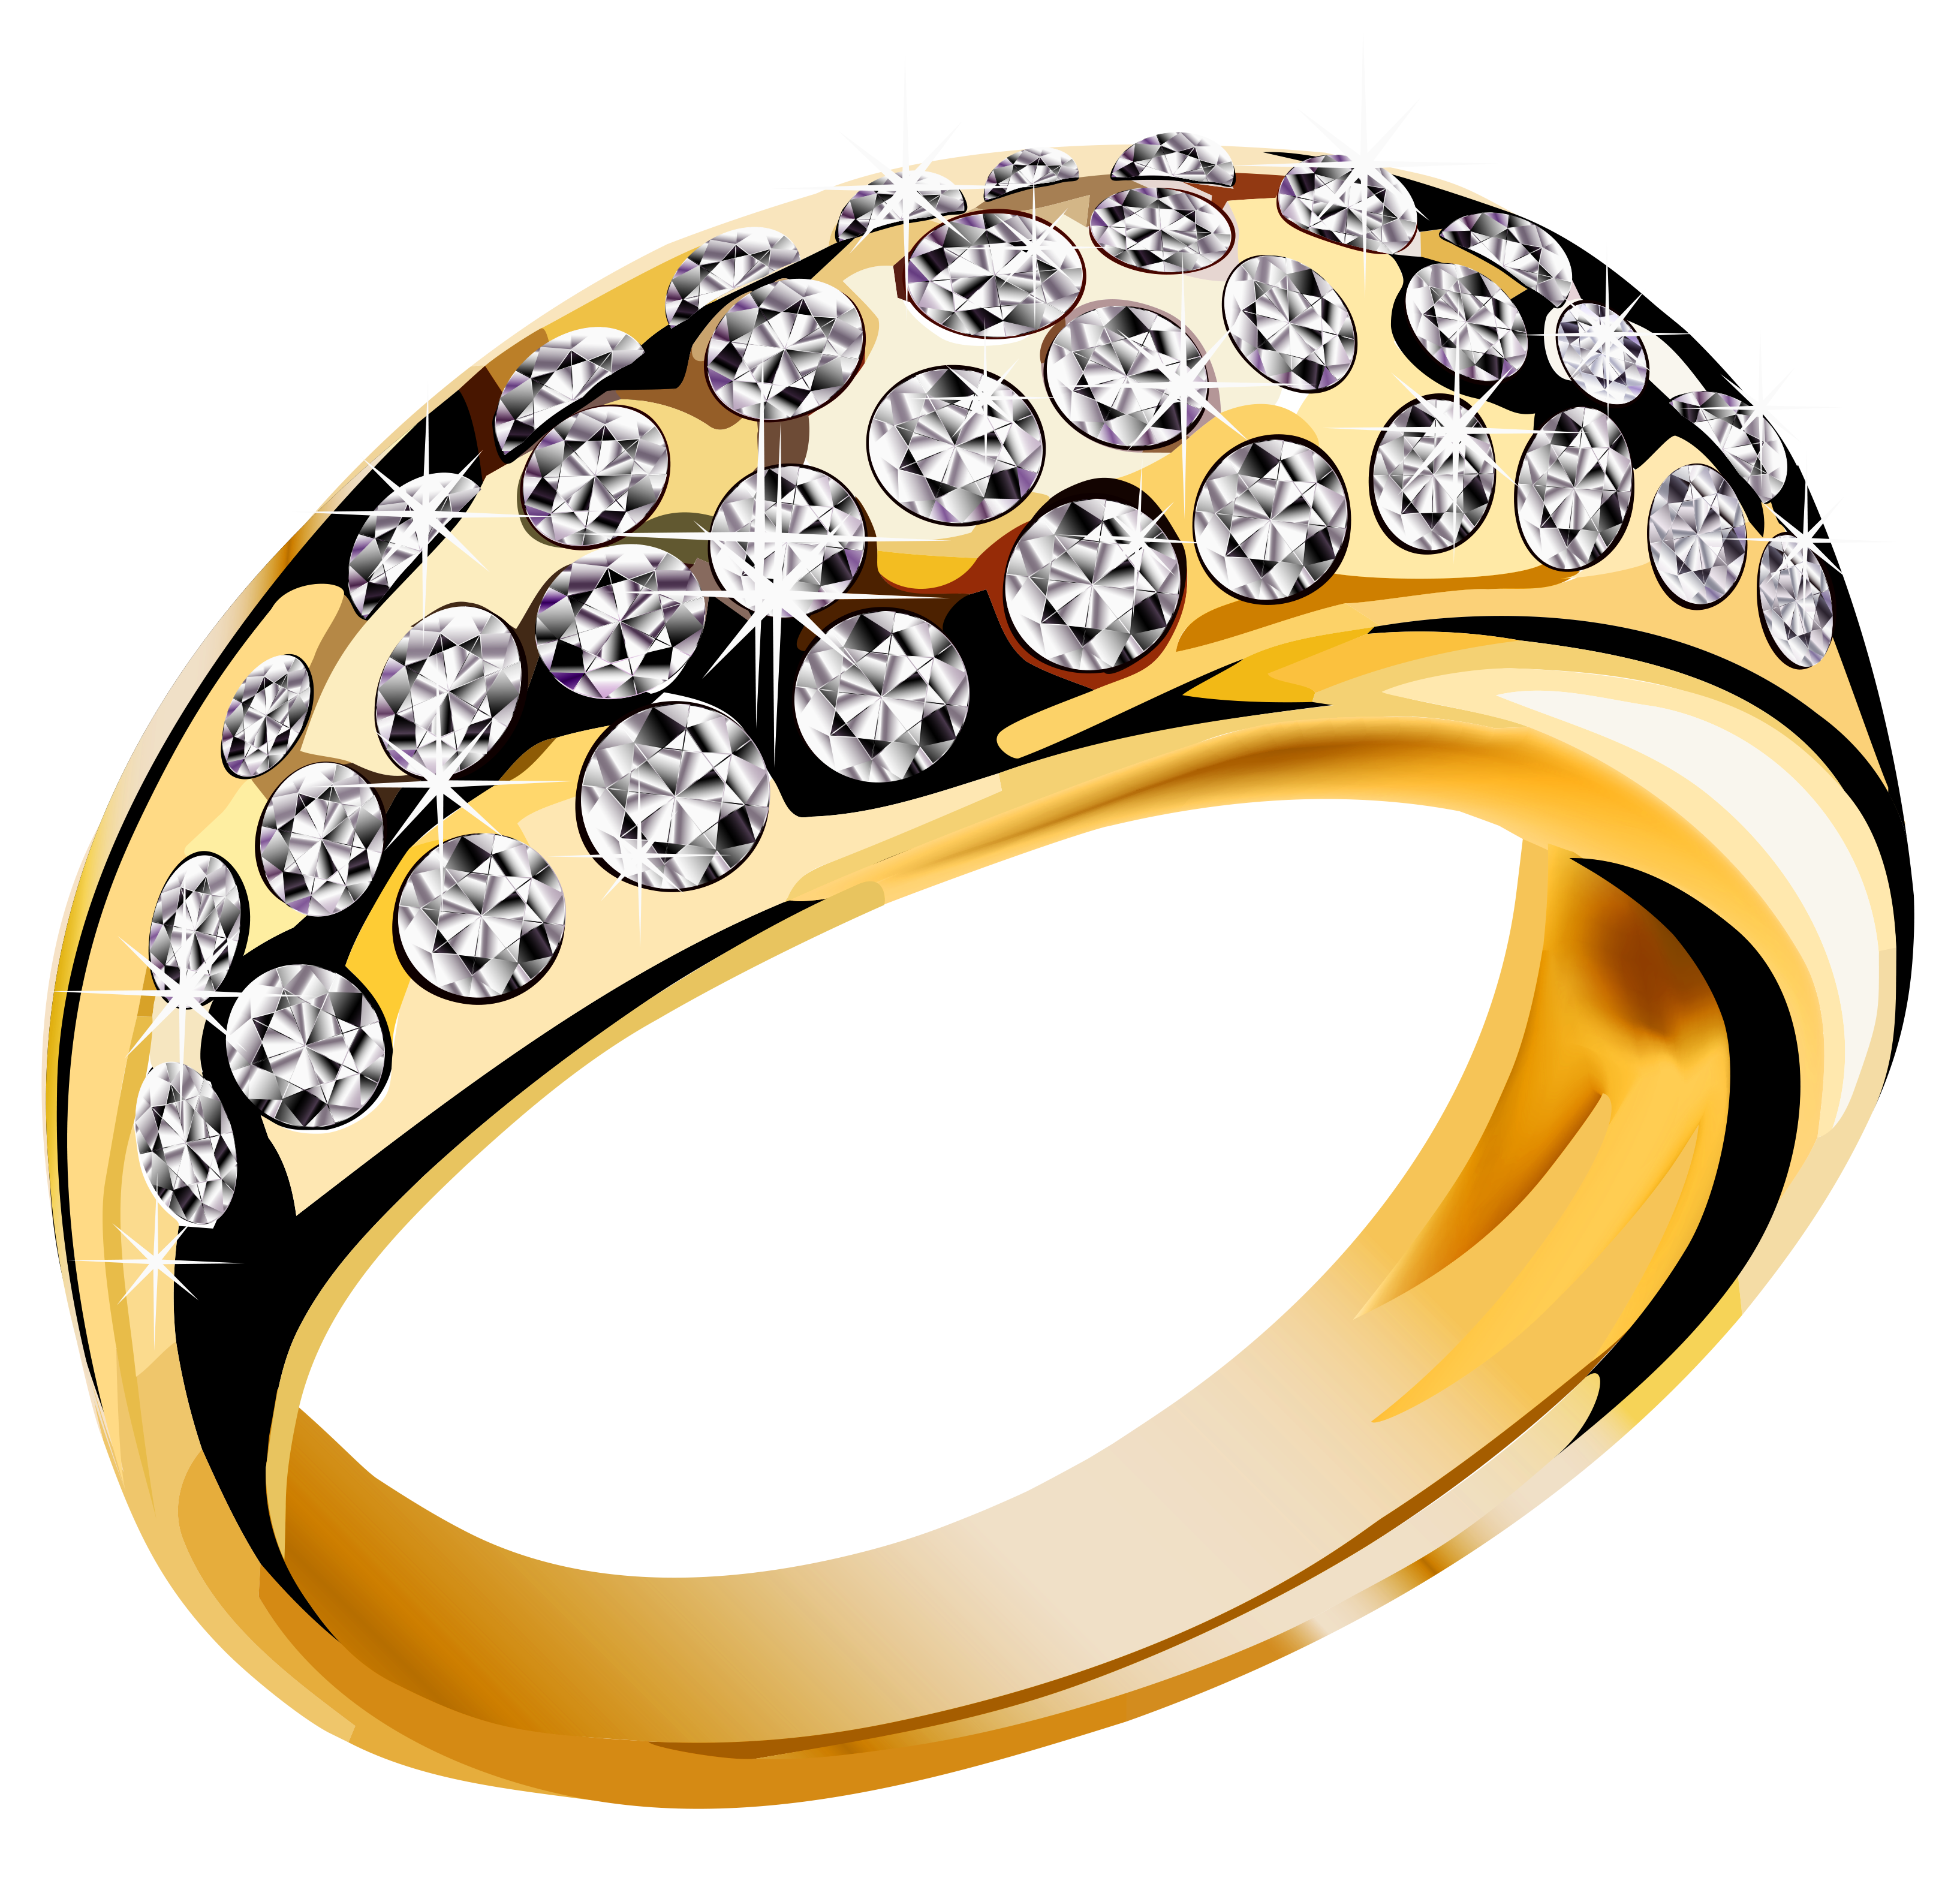 Wedding Ring Clipart Png.